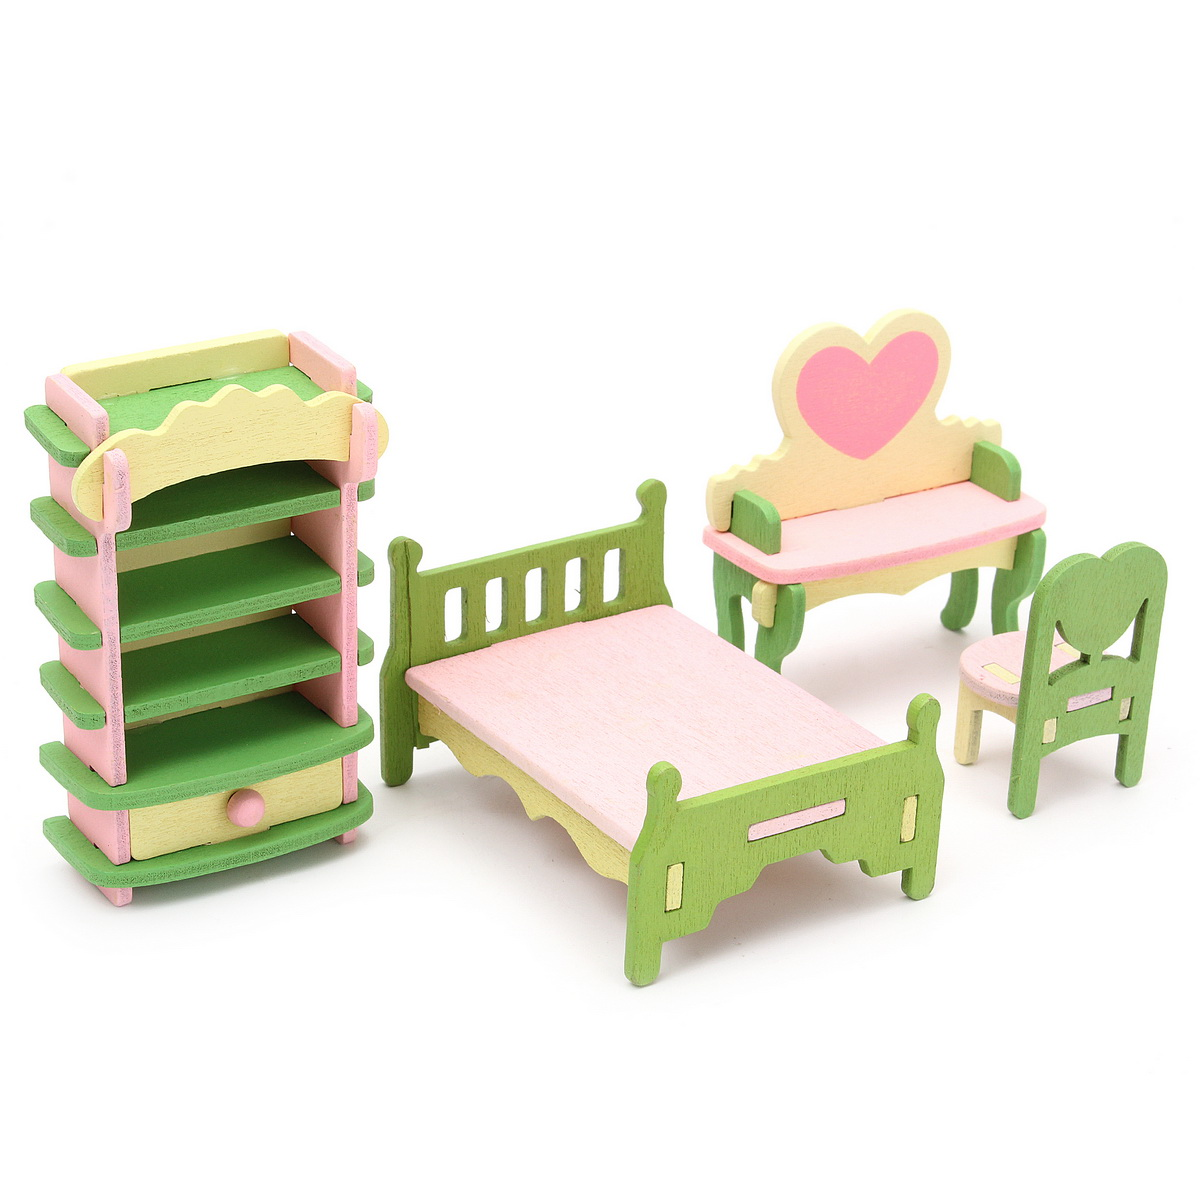 Toys Dollhouse Furniture Doll Accessories Wooden Dolls House Miniature  Accessory Room Furniture Set Kids Pretend Play